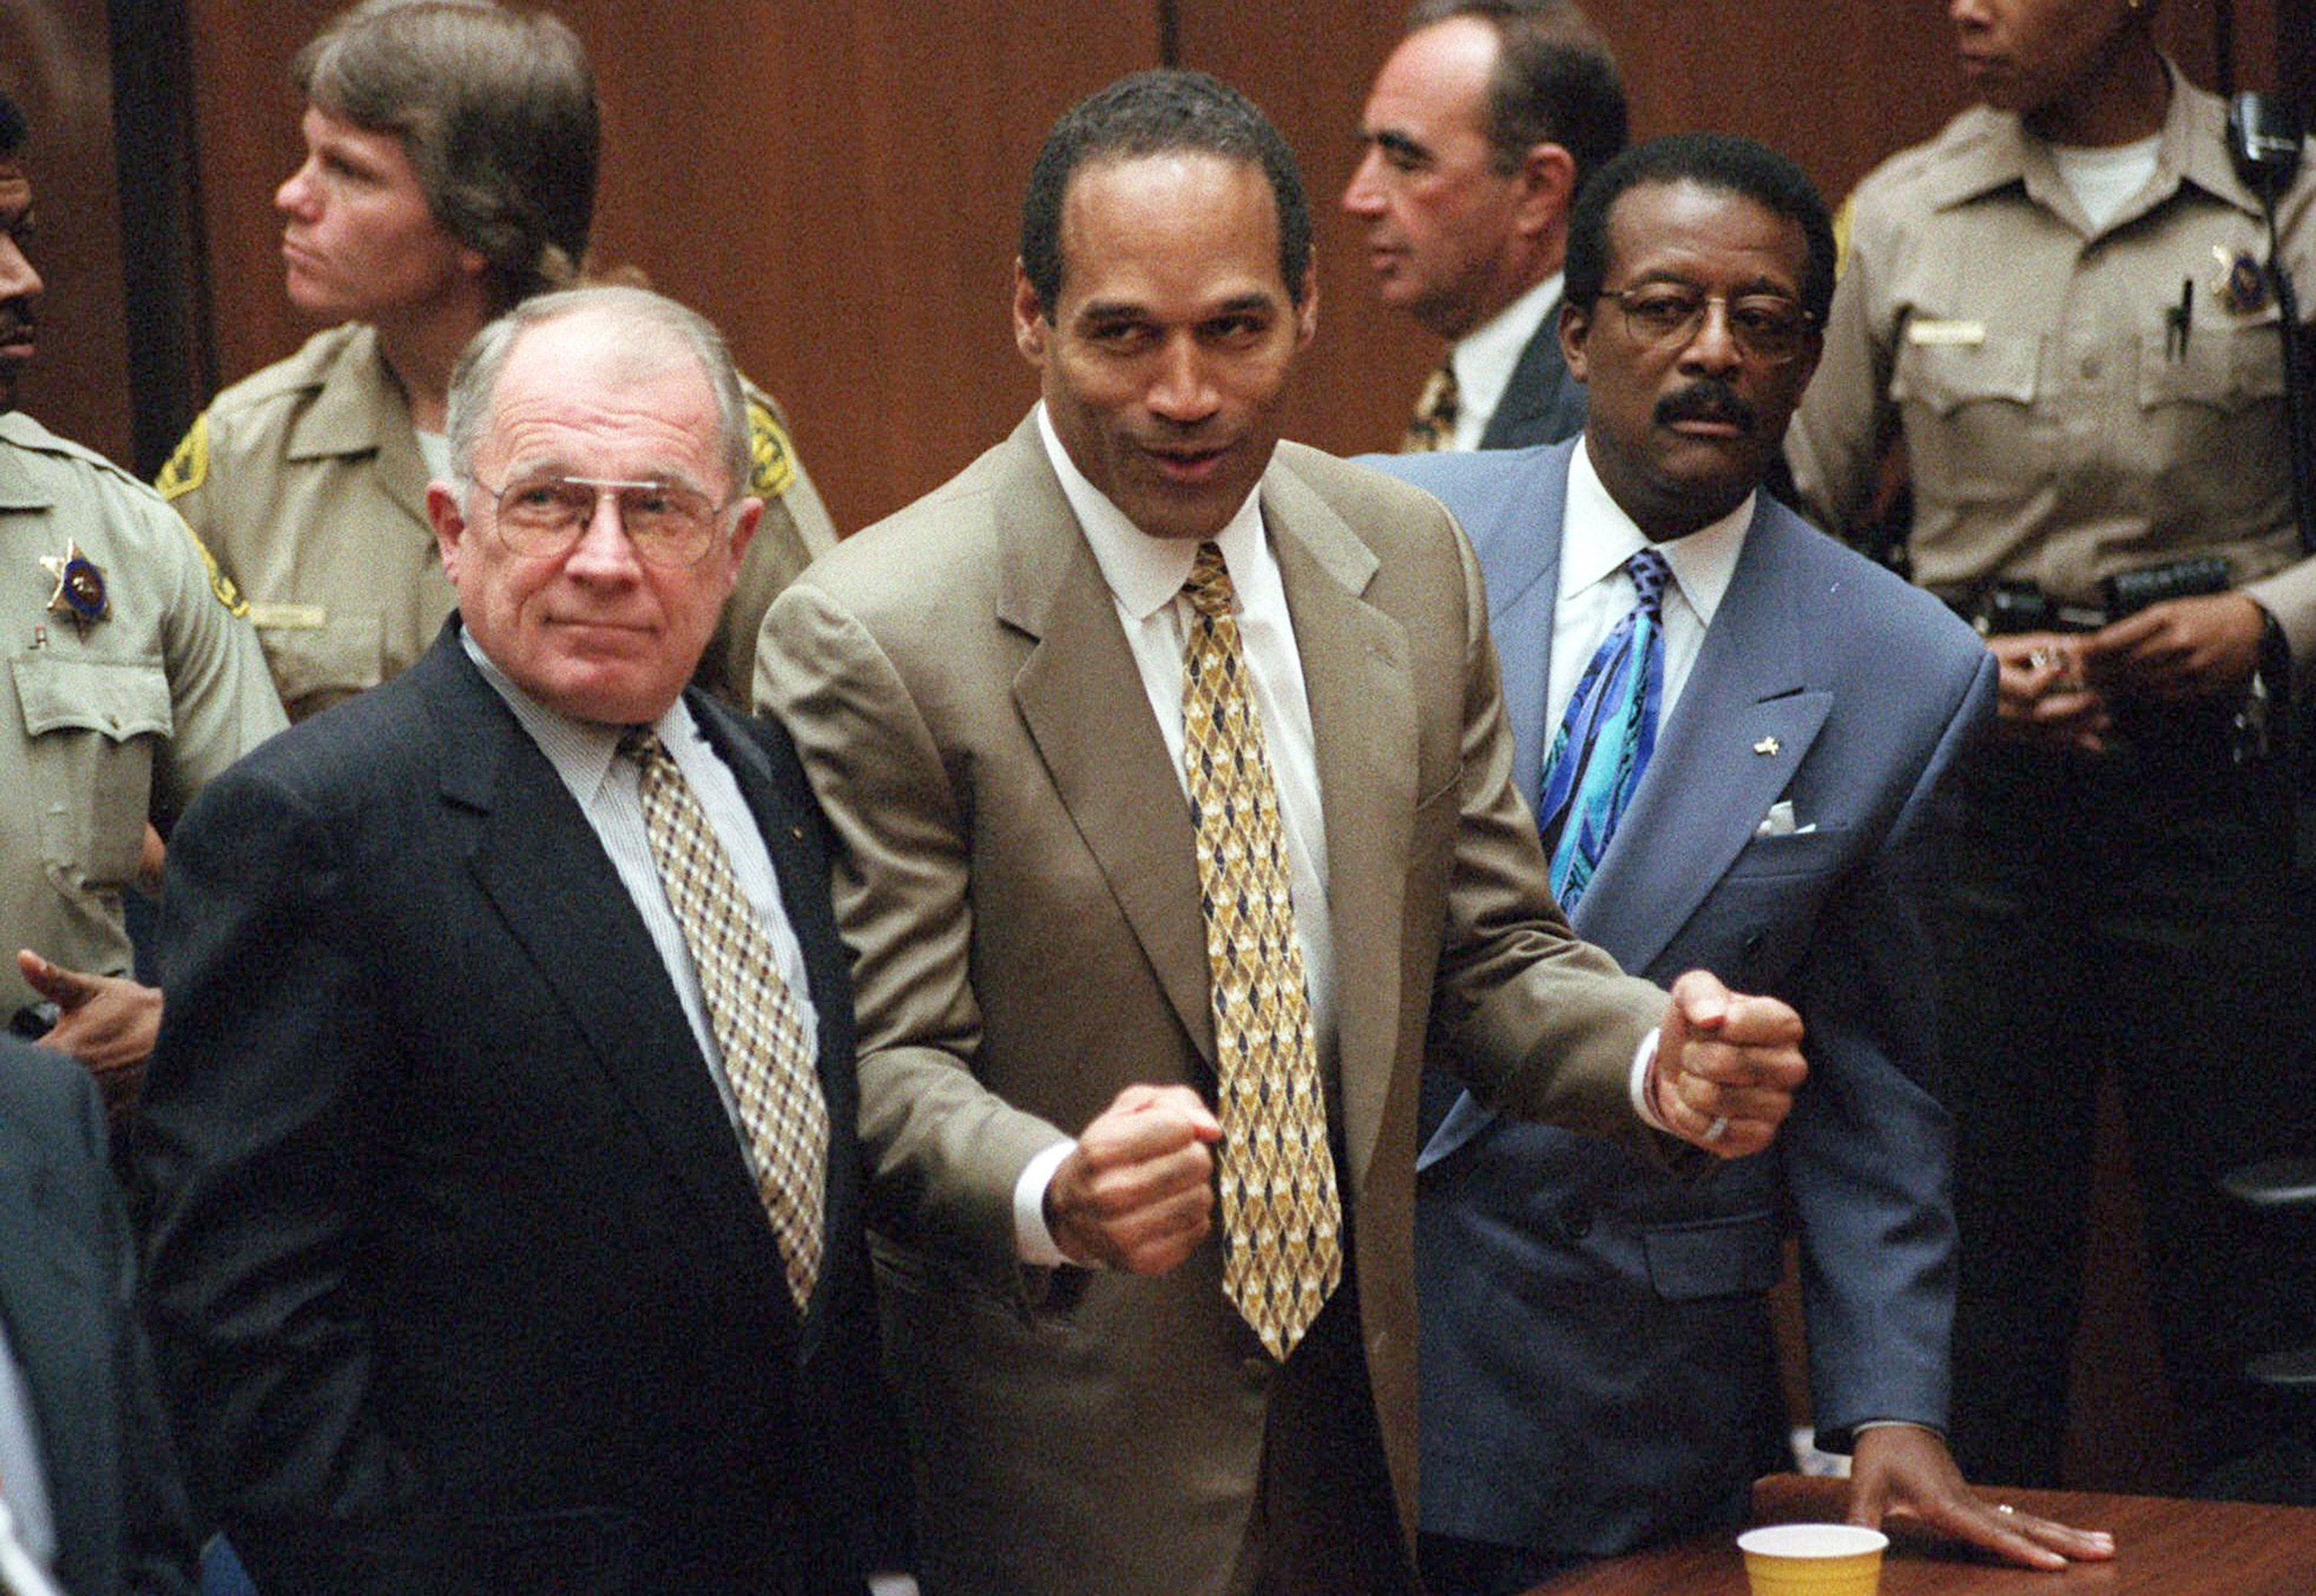 O.J. Simpson reacts as he is found not guilty of murdering his ex-wife Nicole Brown Simpson and her friend Ron Goldman, at the Criminal Courts Building in Los Angeles. At left is defense lawyer F. Lee Bailey and at right is defense attorney Johnnie Cochran Jr. Defense attorney Robert Shapiro is in profile behind them. (AP Photo/Daily News, Myung J. Chun, Pool, File)